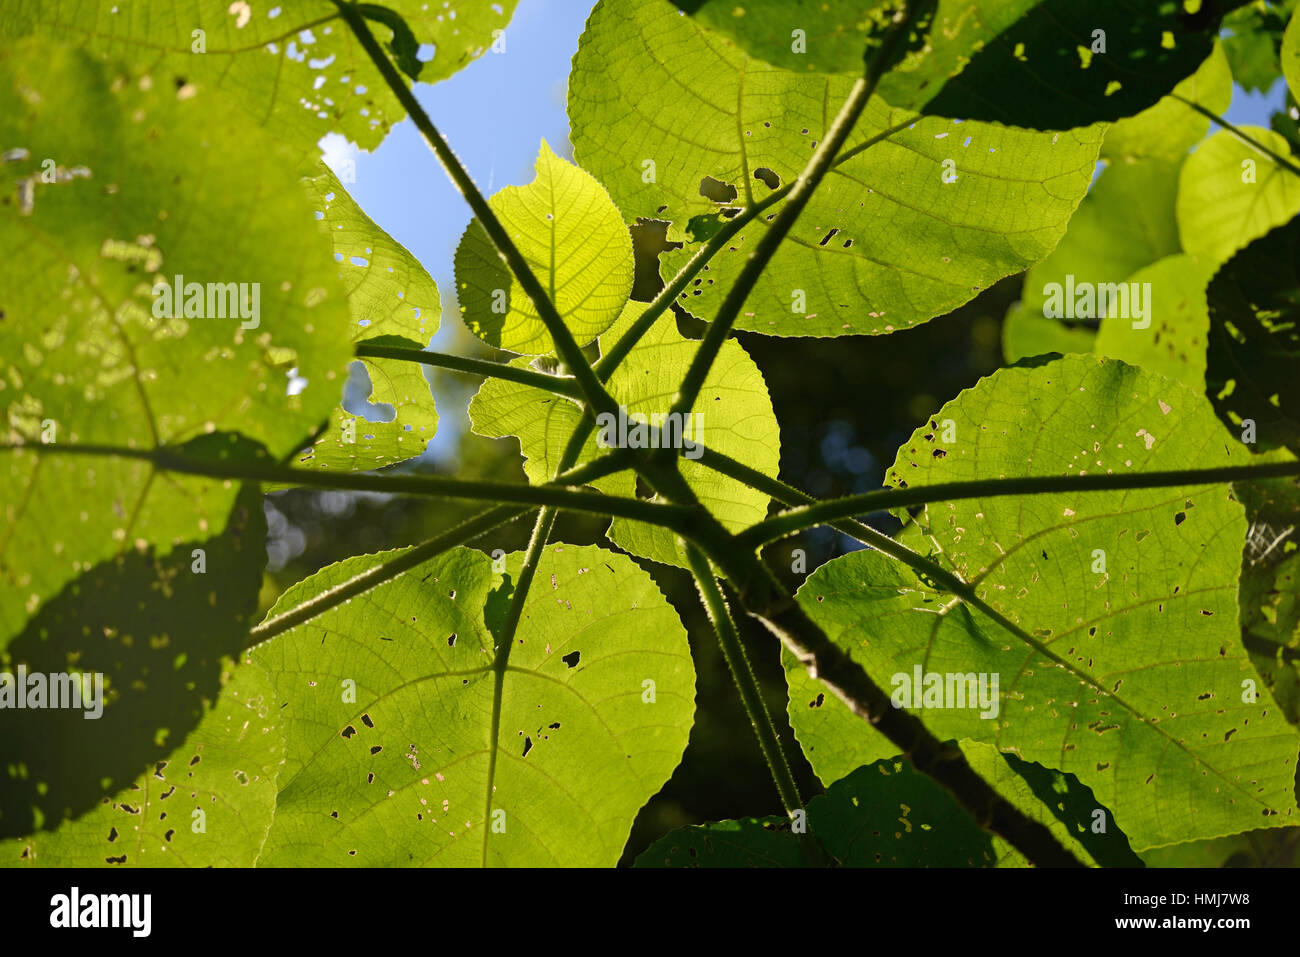 Backlighting on leaves of the fearsome giant stinging tree, Dendrocnide excelsa, also called Australian nettle tree, Stock Photo